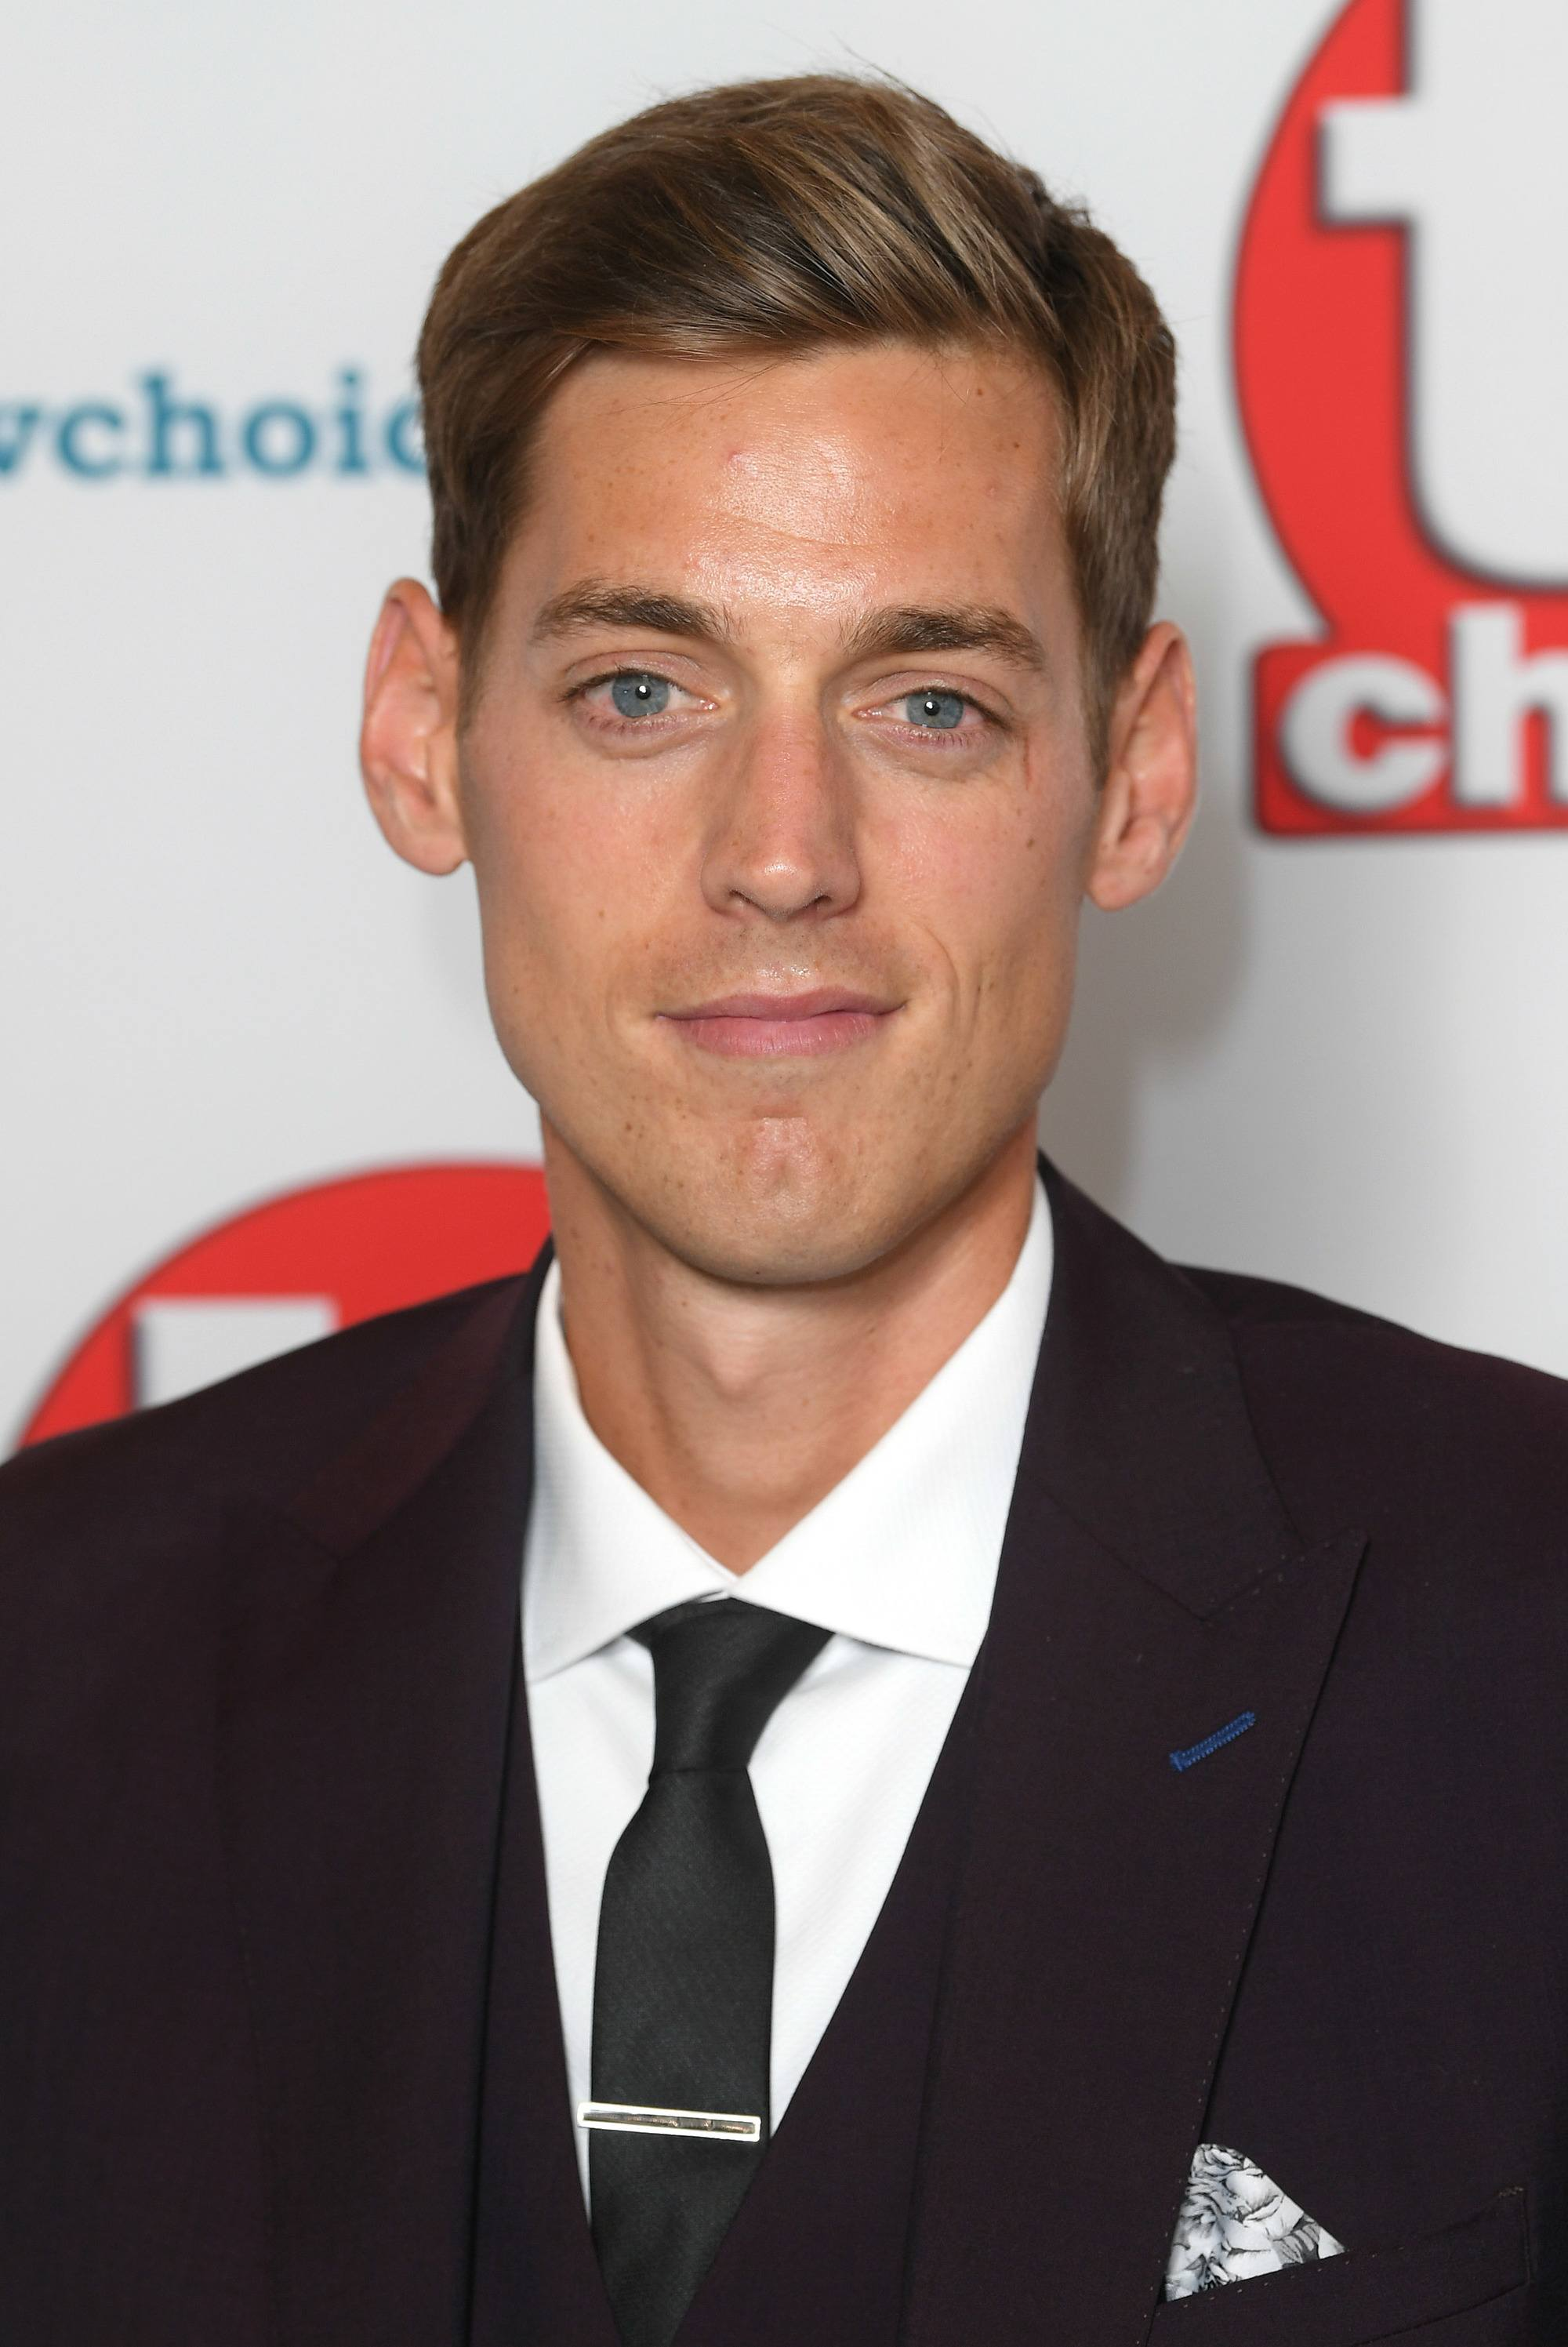 TV Choice Awards: Close up shot of Sam Homewood with dark blonde short hair styled into a swept-back quiff, wearing a black suit jacket with a tie on the red carpet